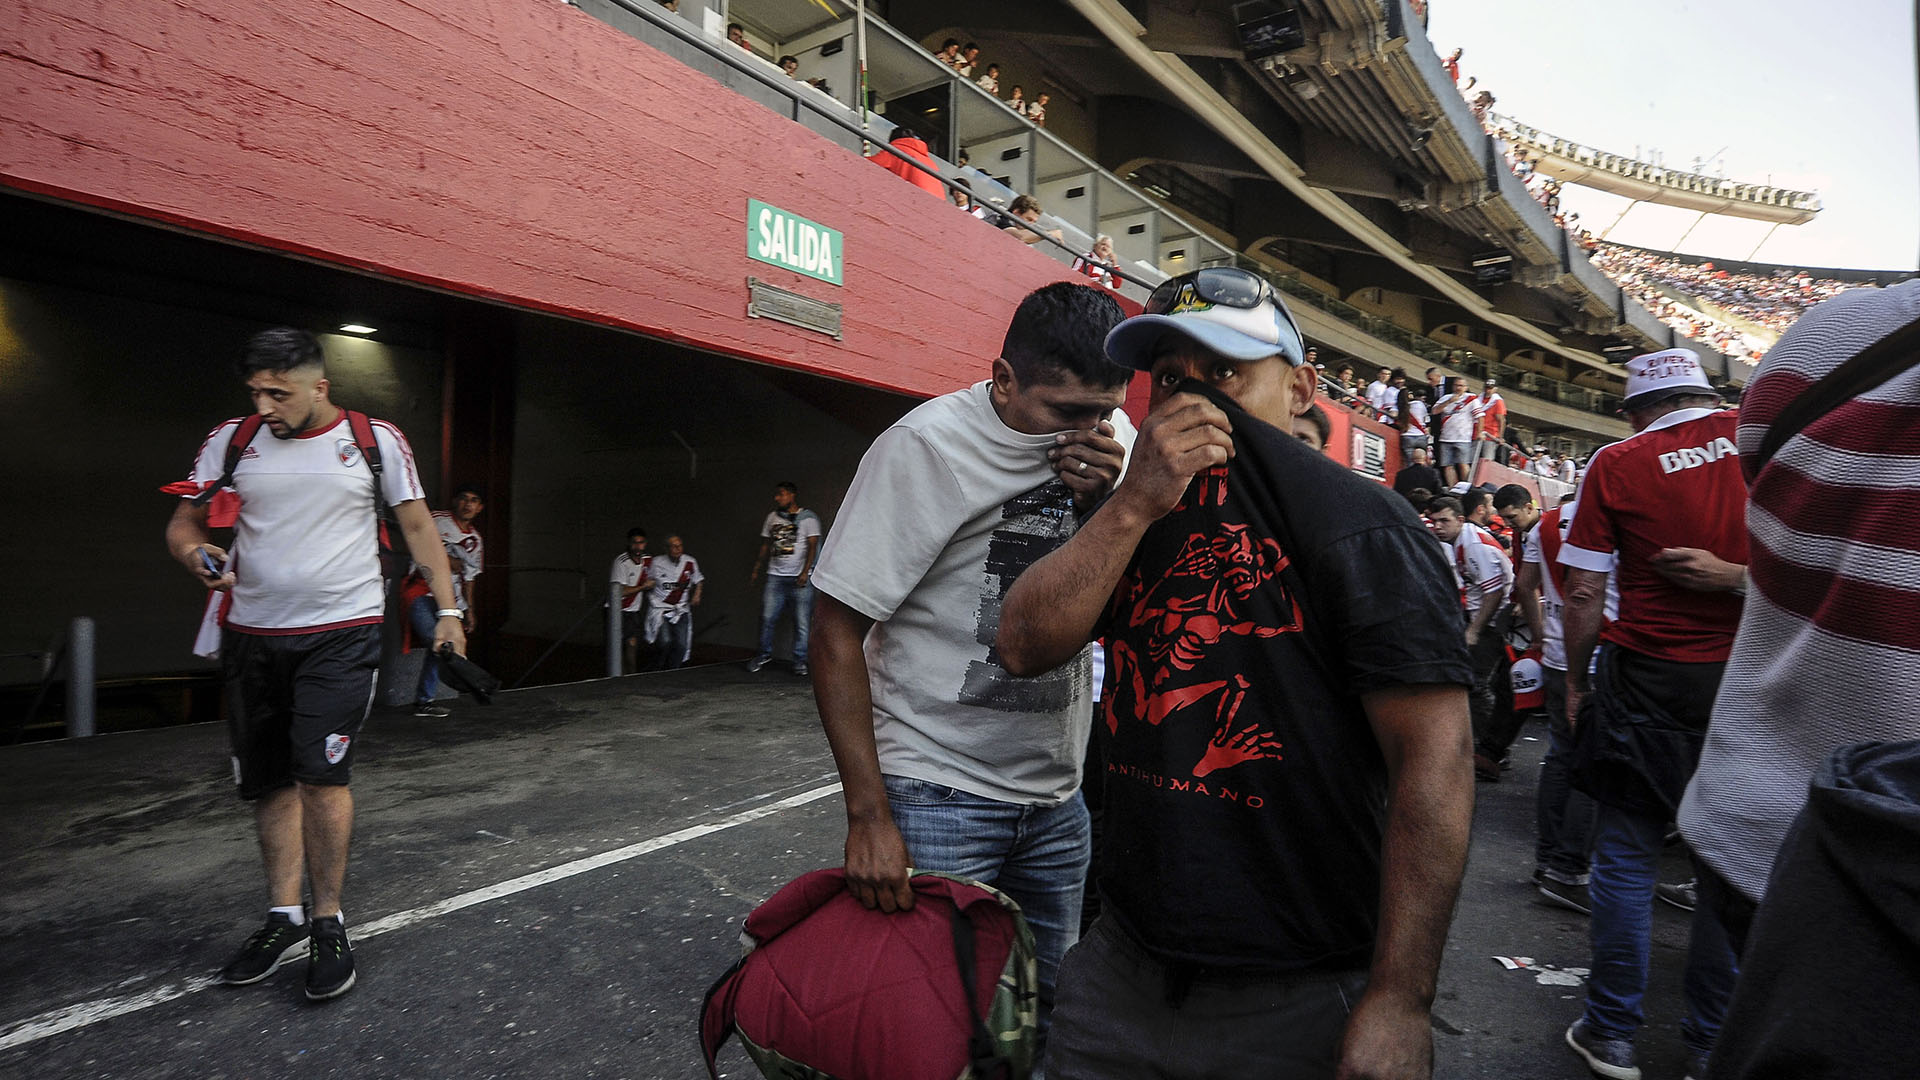 Supporters of River Plate cover their faces after being affected by pepper gas sprayed by police outside the Monumental stadium in Buenos Aires, to disperse fans without tickets that tried to enter the arena, before the all-Argentine Copa Libertadores second leg final match between River Plate and Boca Juniors, on November 24, 2018. (Photo by JAVIER GONZALEZ TOLEDO / AFP)